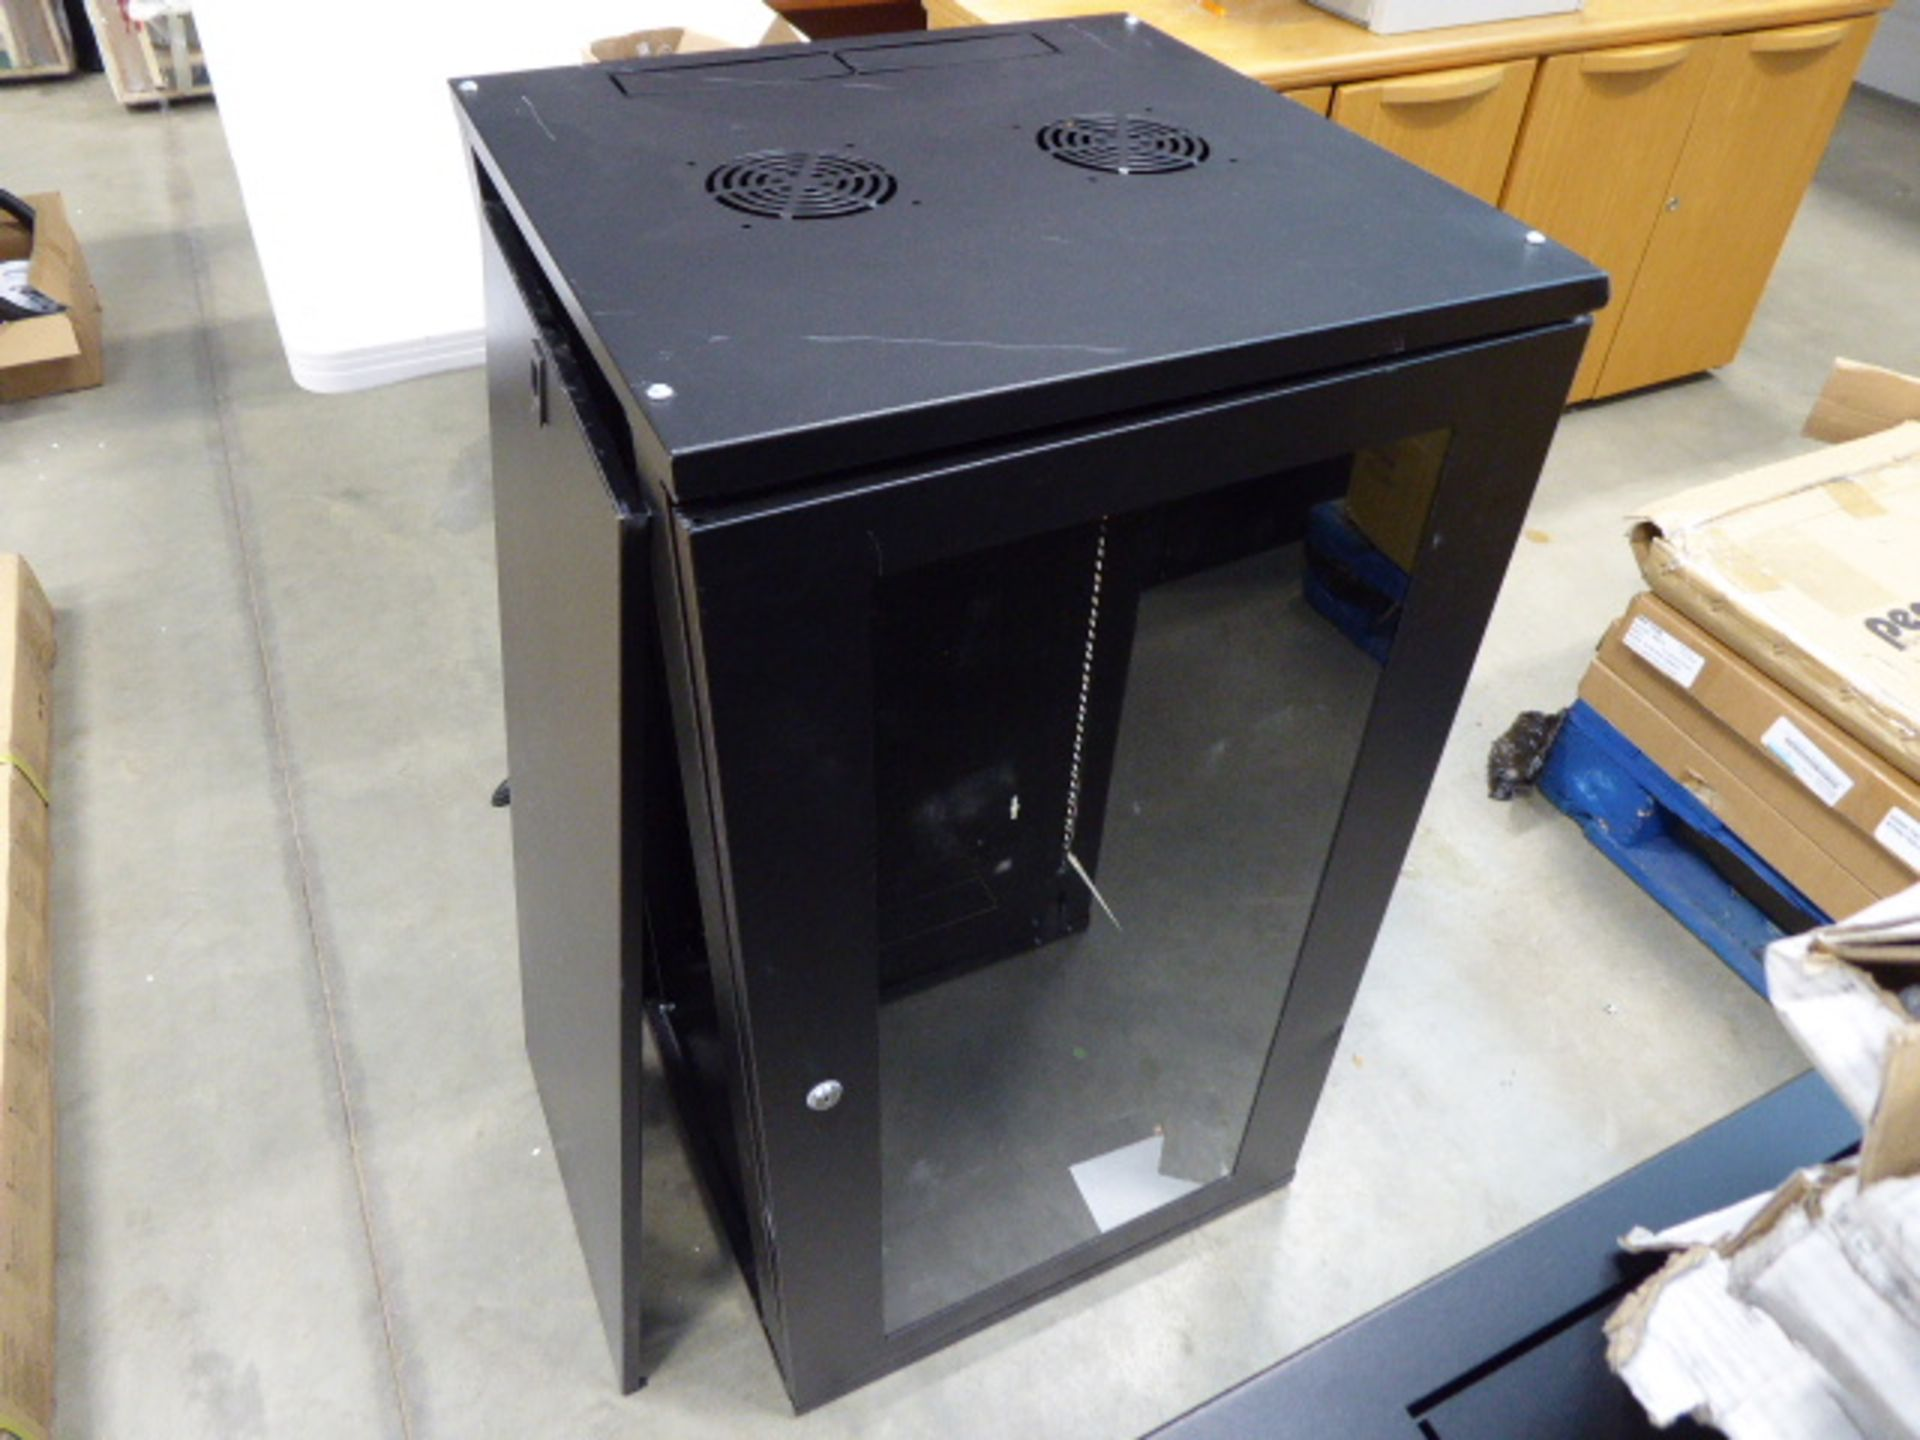 Large comms cabinet